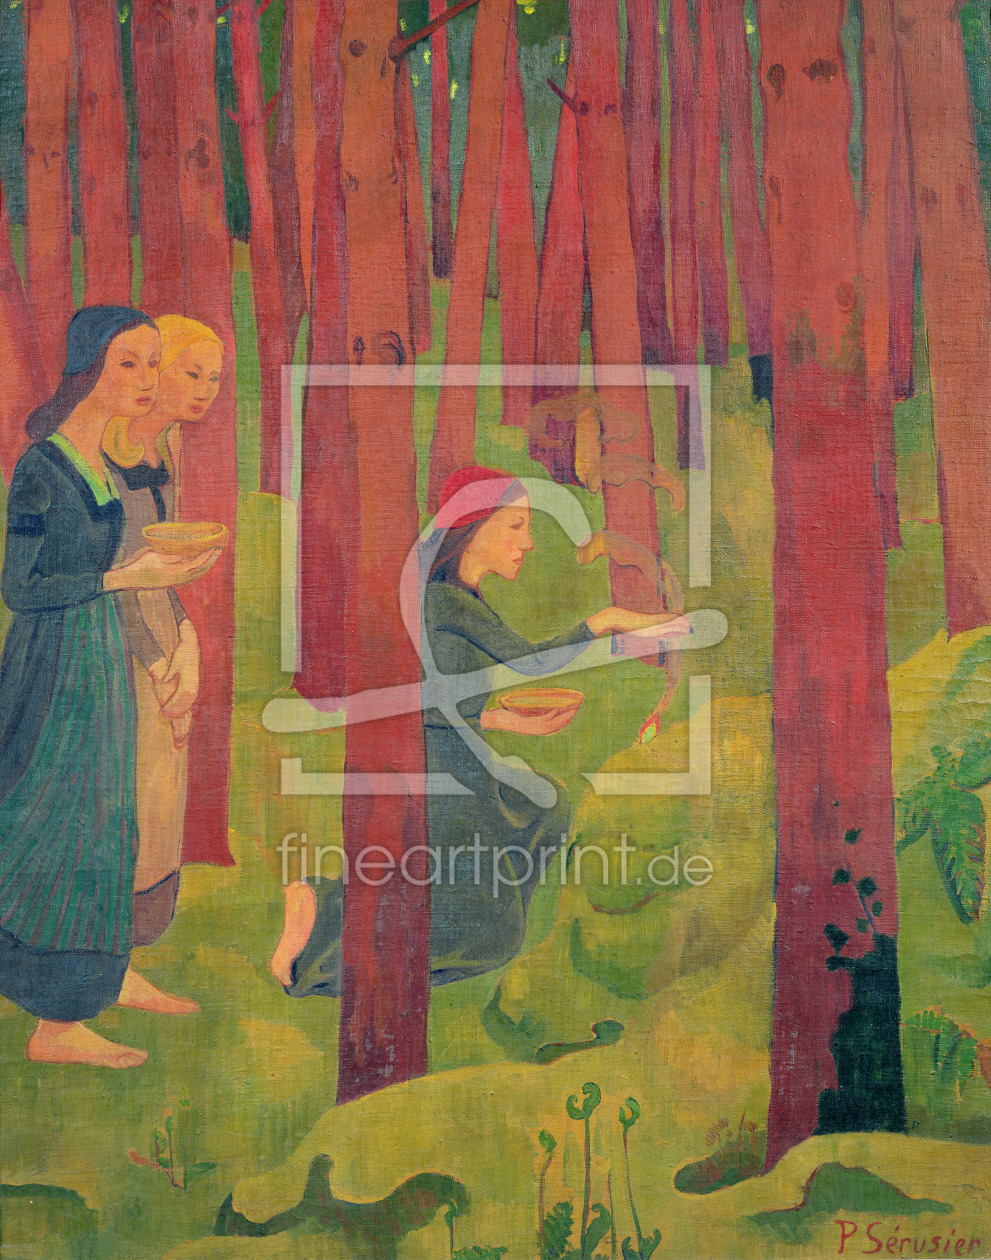 Bild-Nr.: 31002772 The Incantation, or The Holy Wood, 1891 erstellt von Serusier, Paul